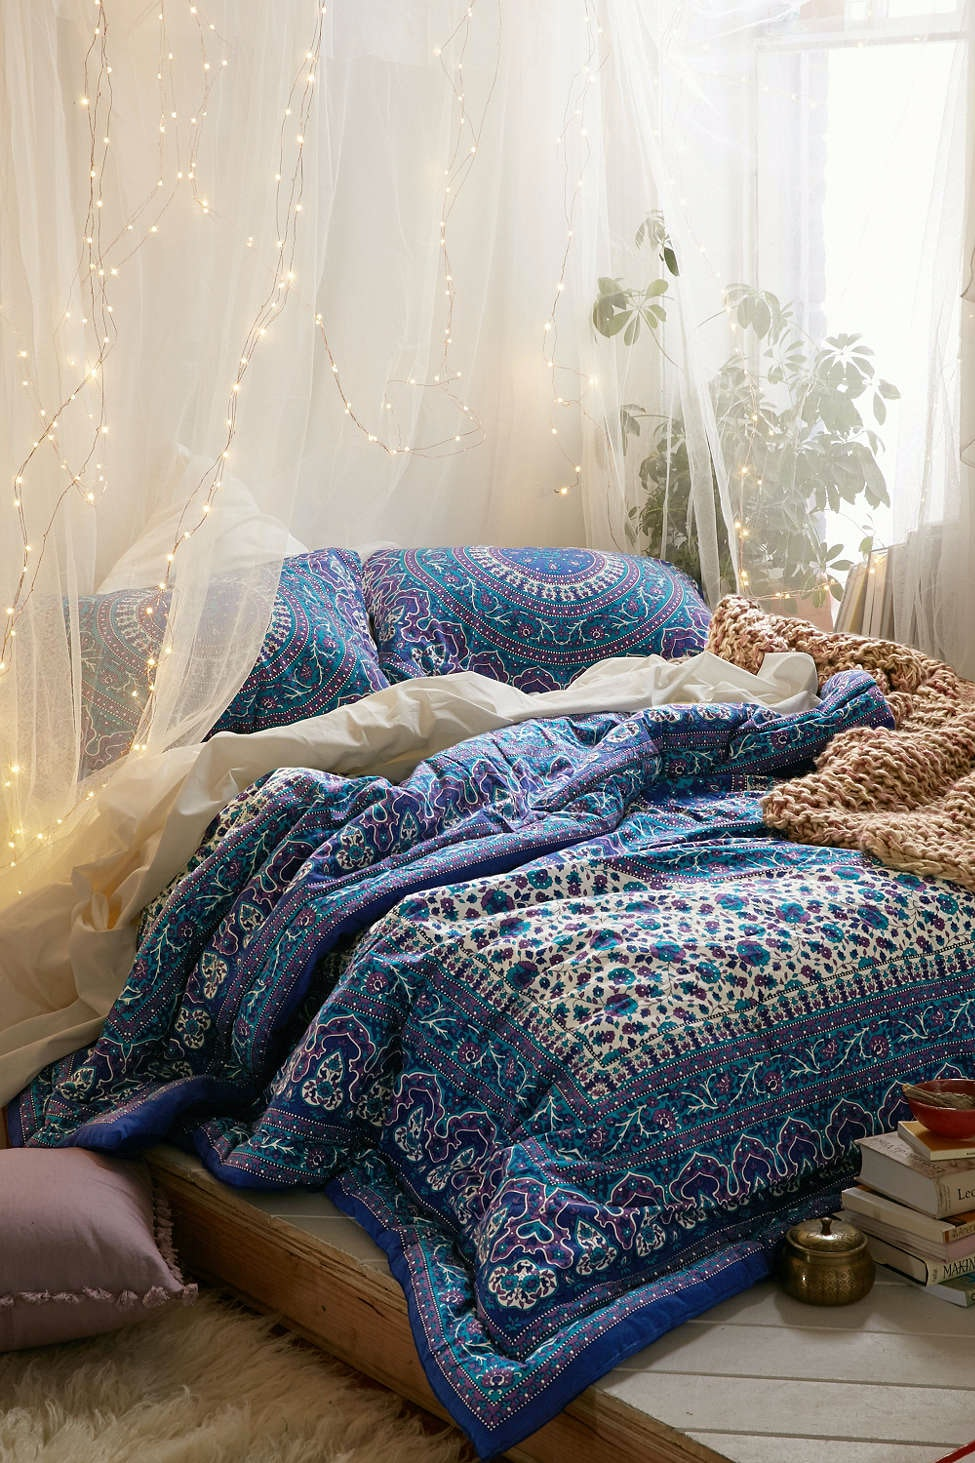 12 Ways To Make Your Bed